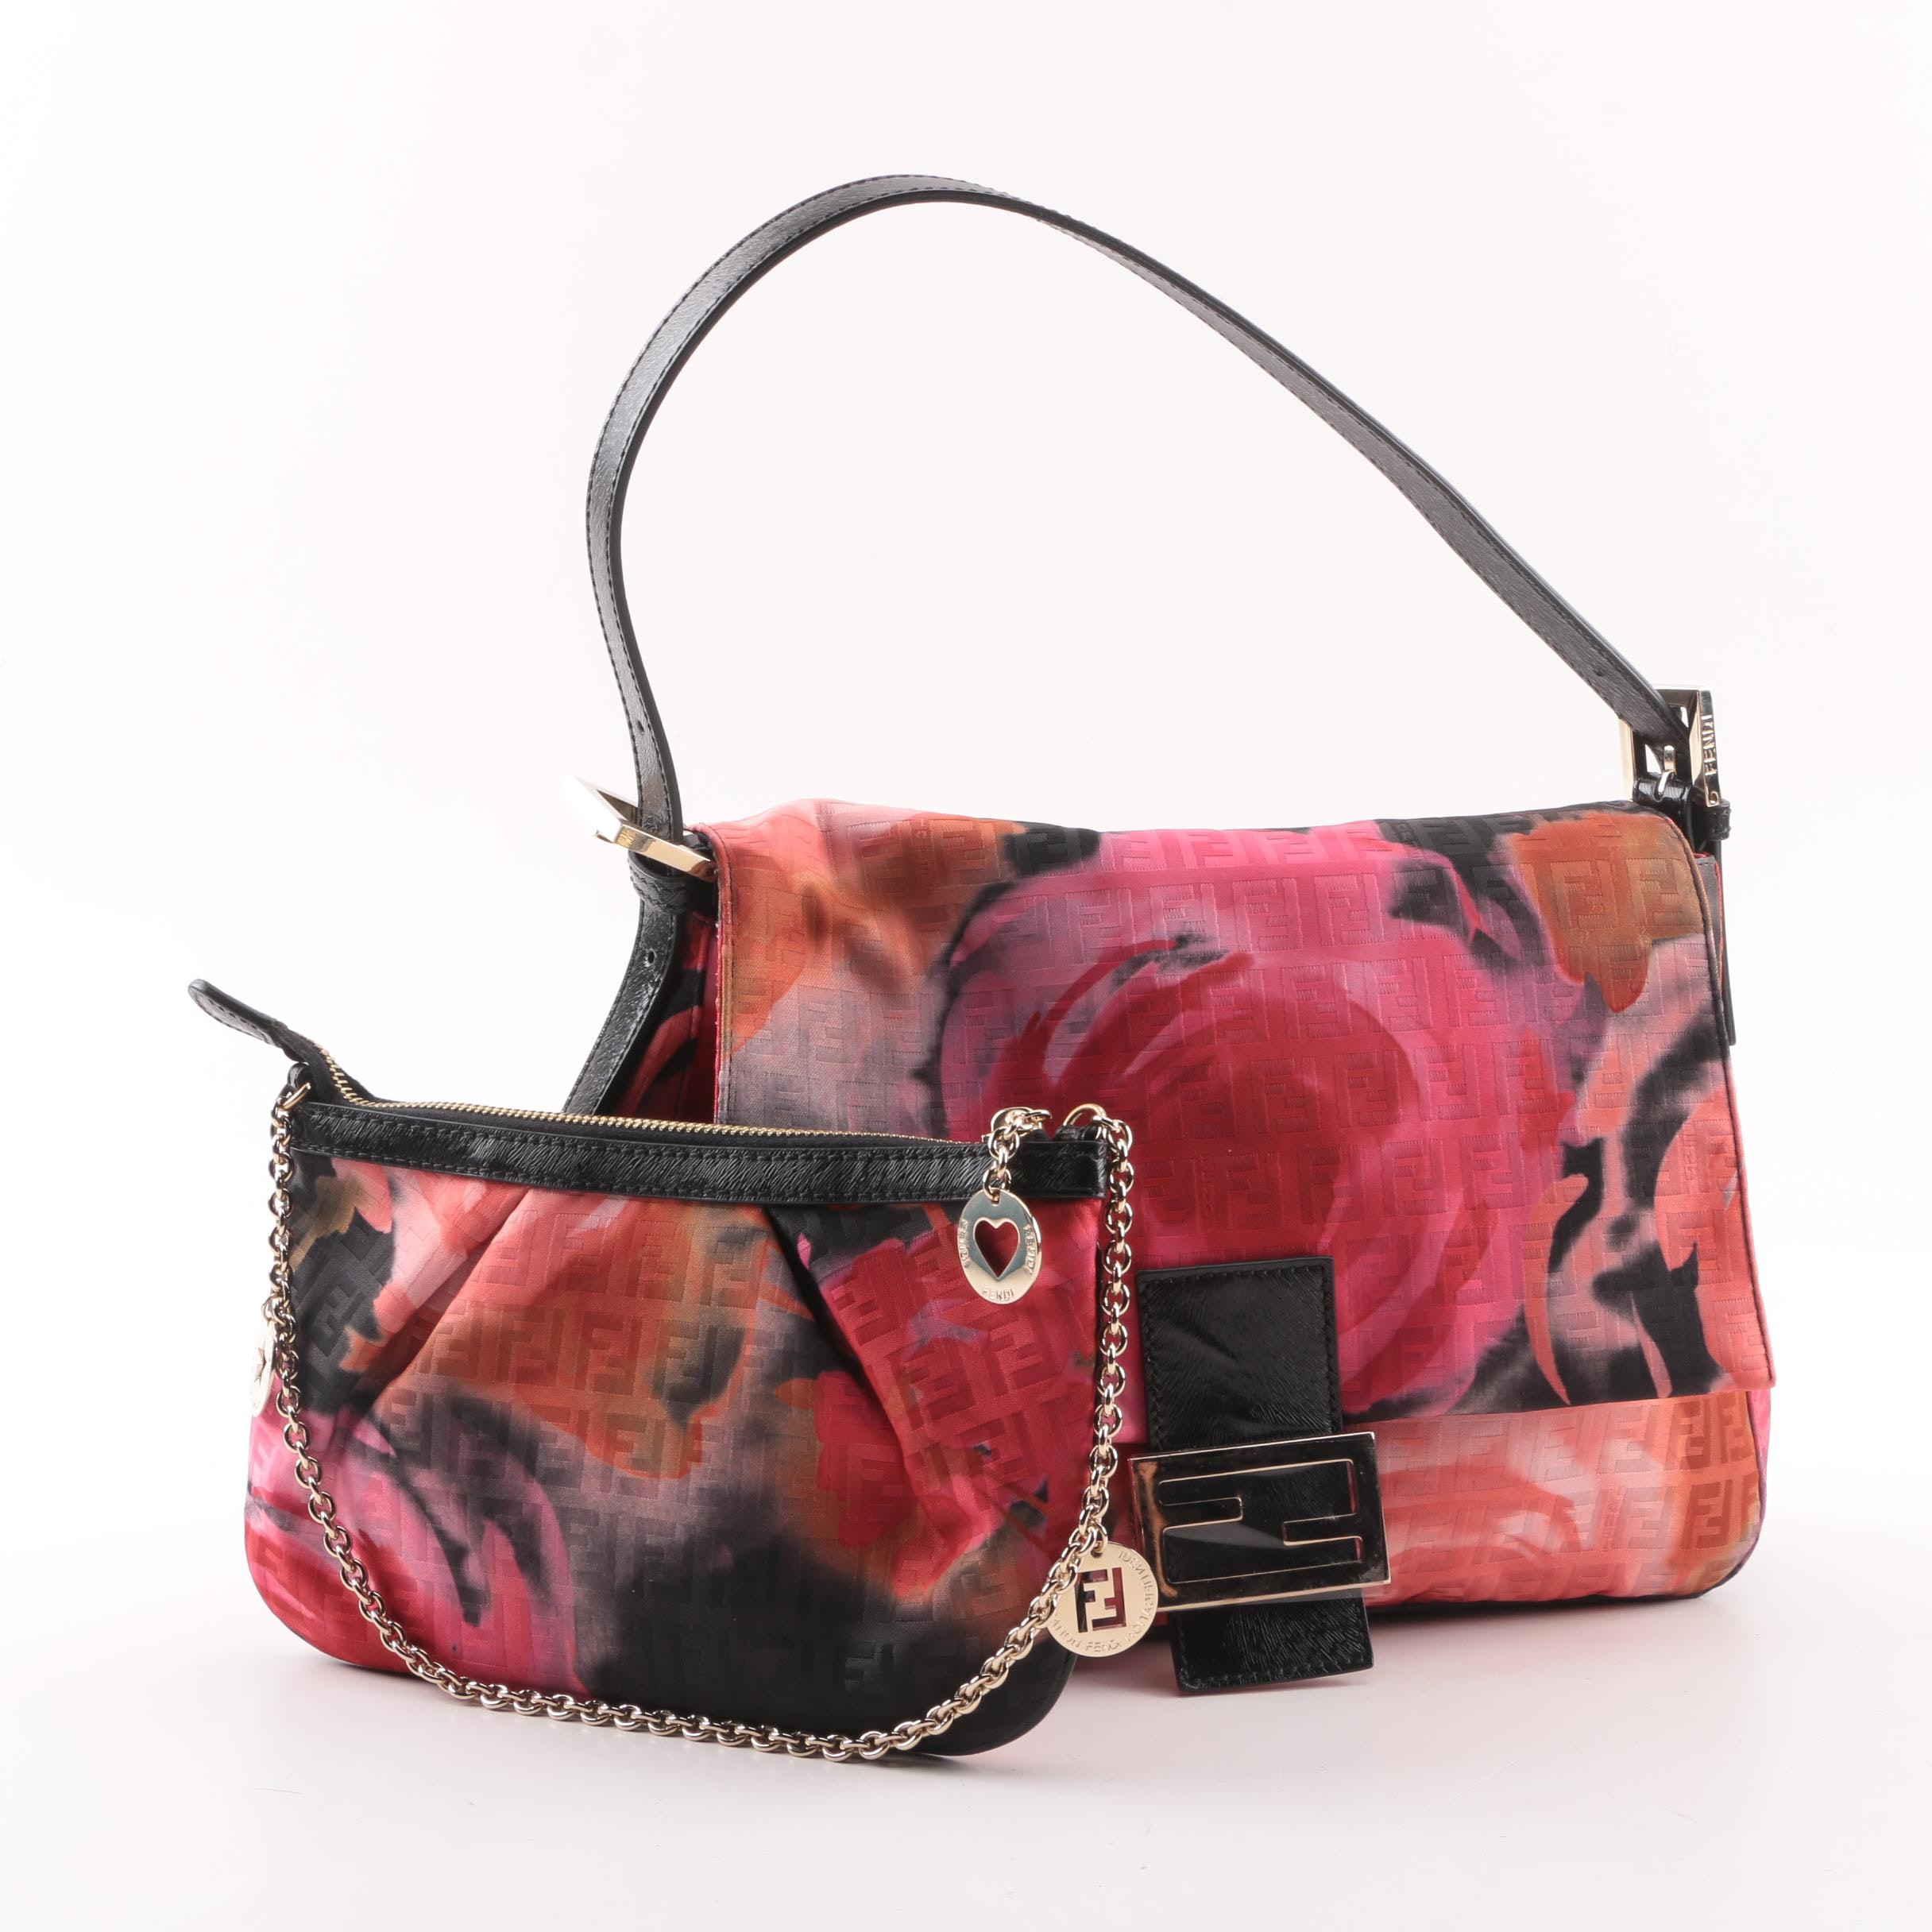 Fendi Zucca Floral Print Mamma Bag with Matching Pouch